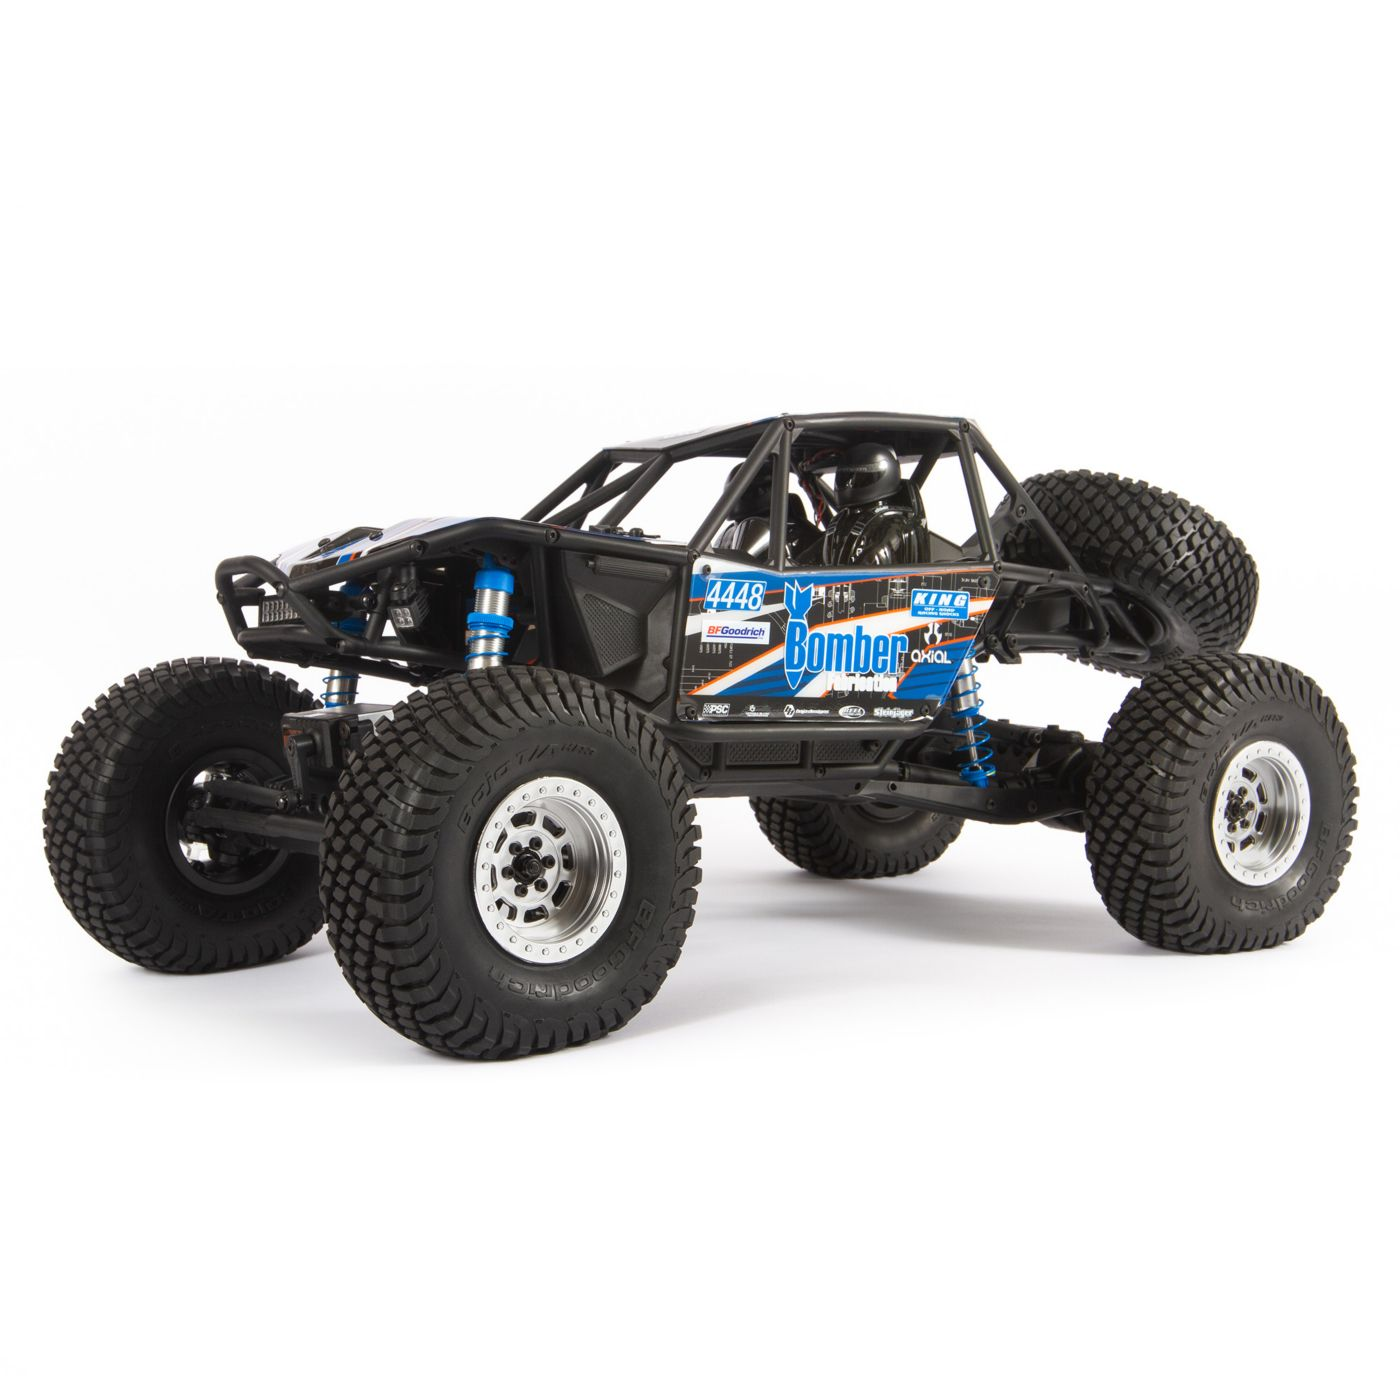 Axial Racing 1/10 RR10 Bomber 4WD Rock Racer RTR, Slawson